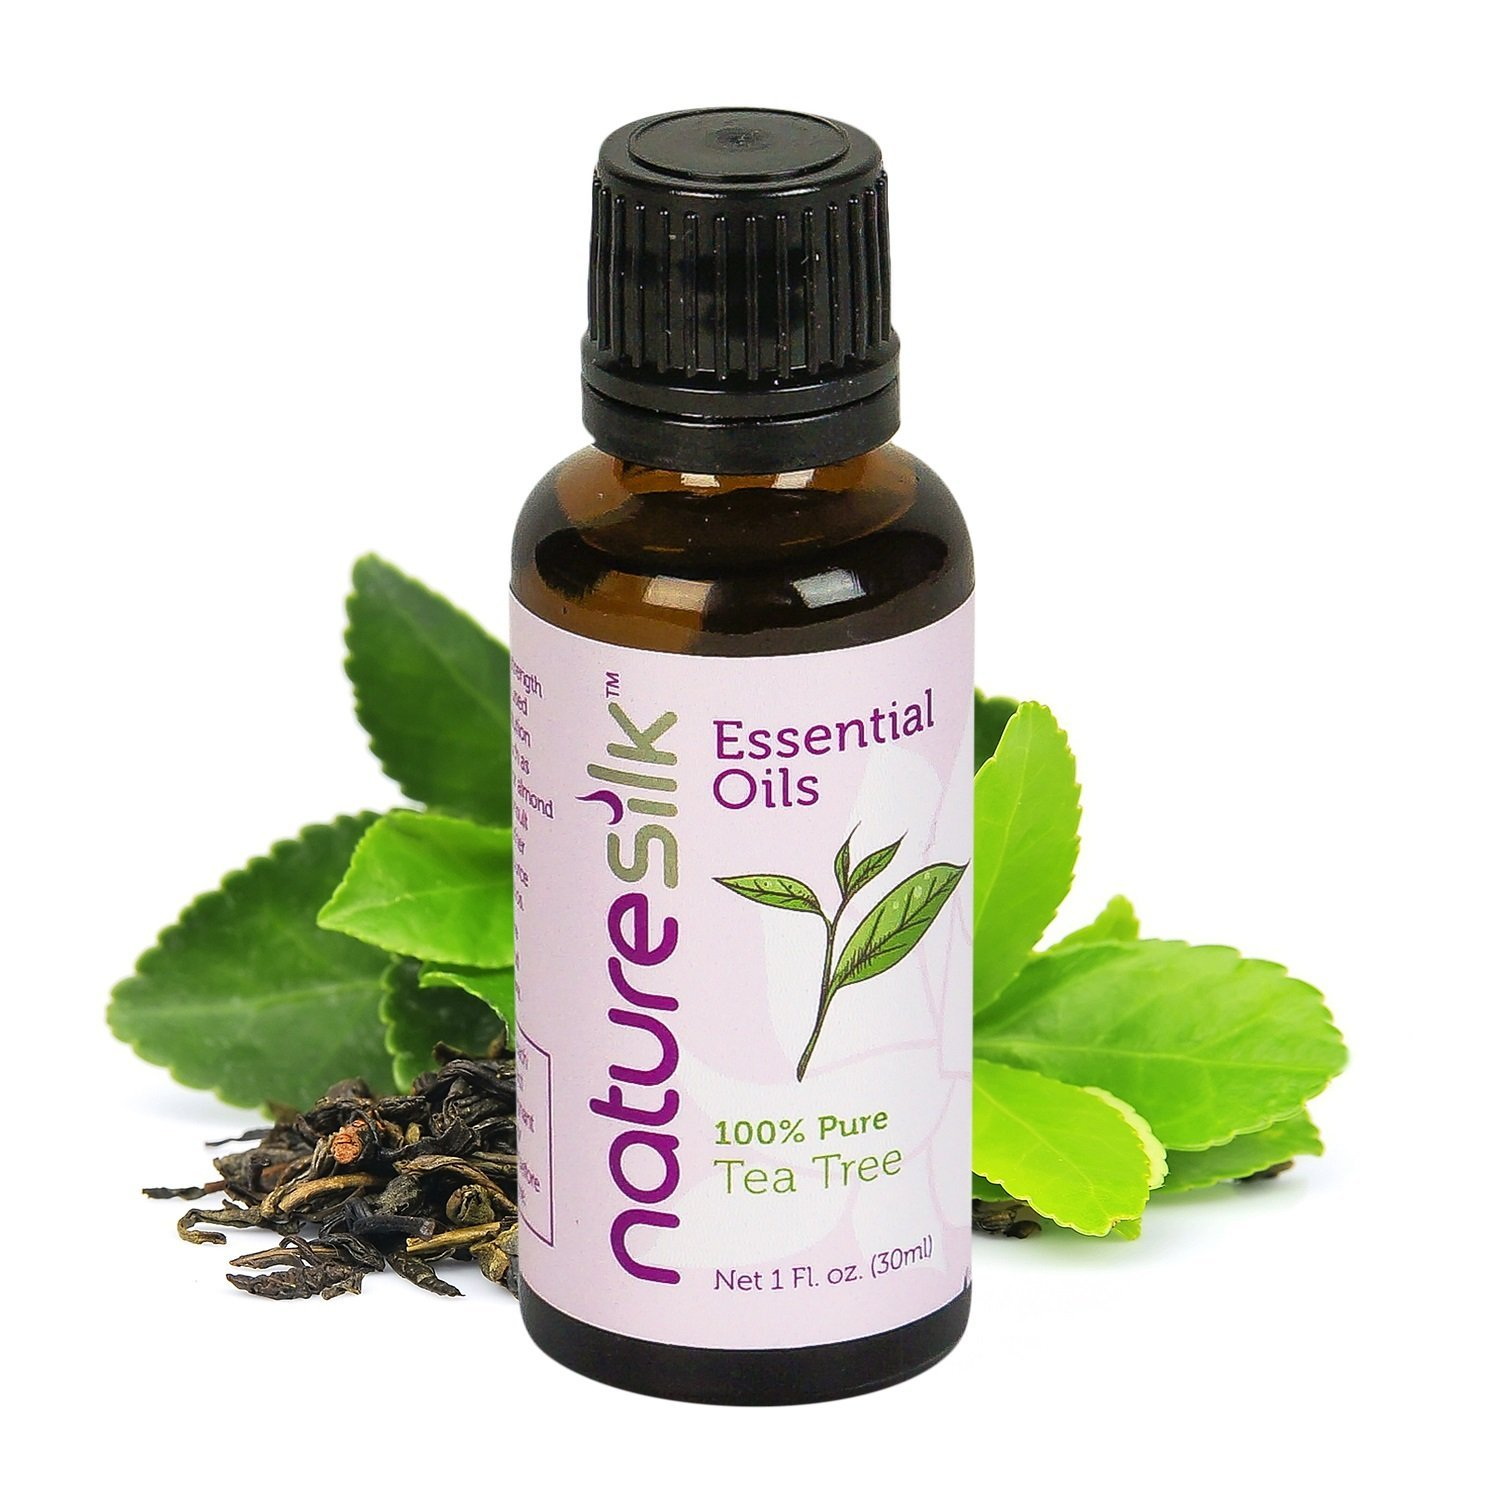 study of tea tree oil and The group treated with eucalyptus oil and lemon tea tree oil had an ovicidal efficacy of 33% (sd 16%) whereas the group treated with melaleuca oil and lavender oil had an ovicidal efficacy of 444% (sd 23%) and the group treated with the suffocation pediculicide.